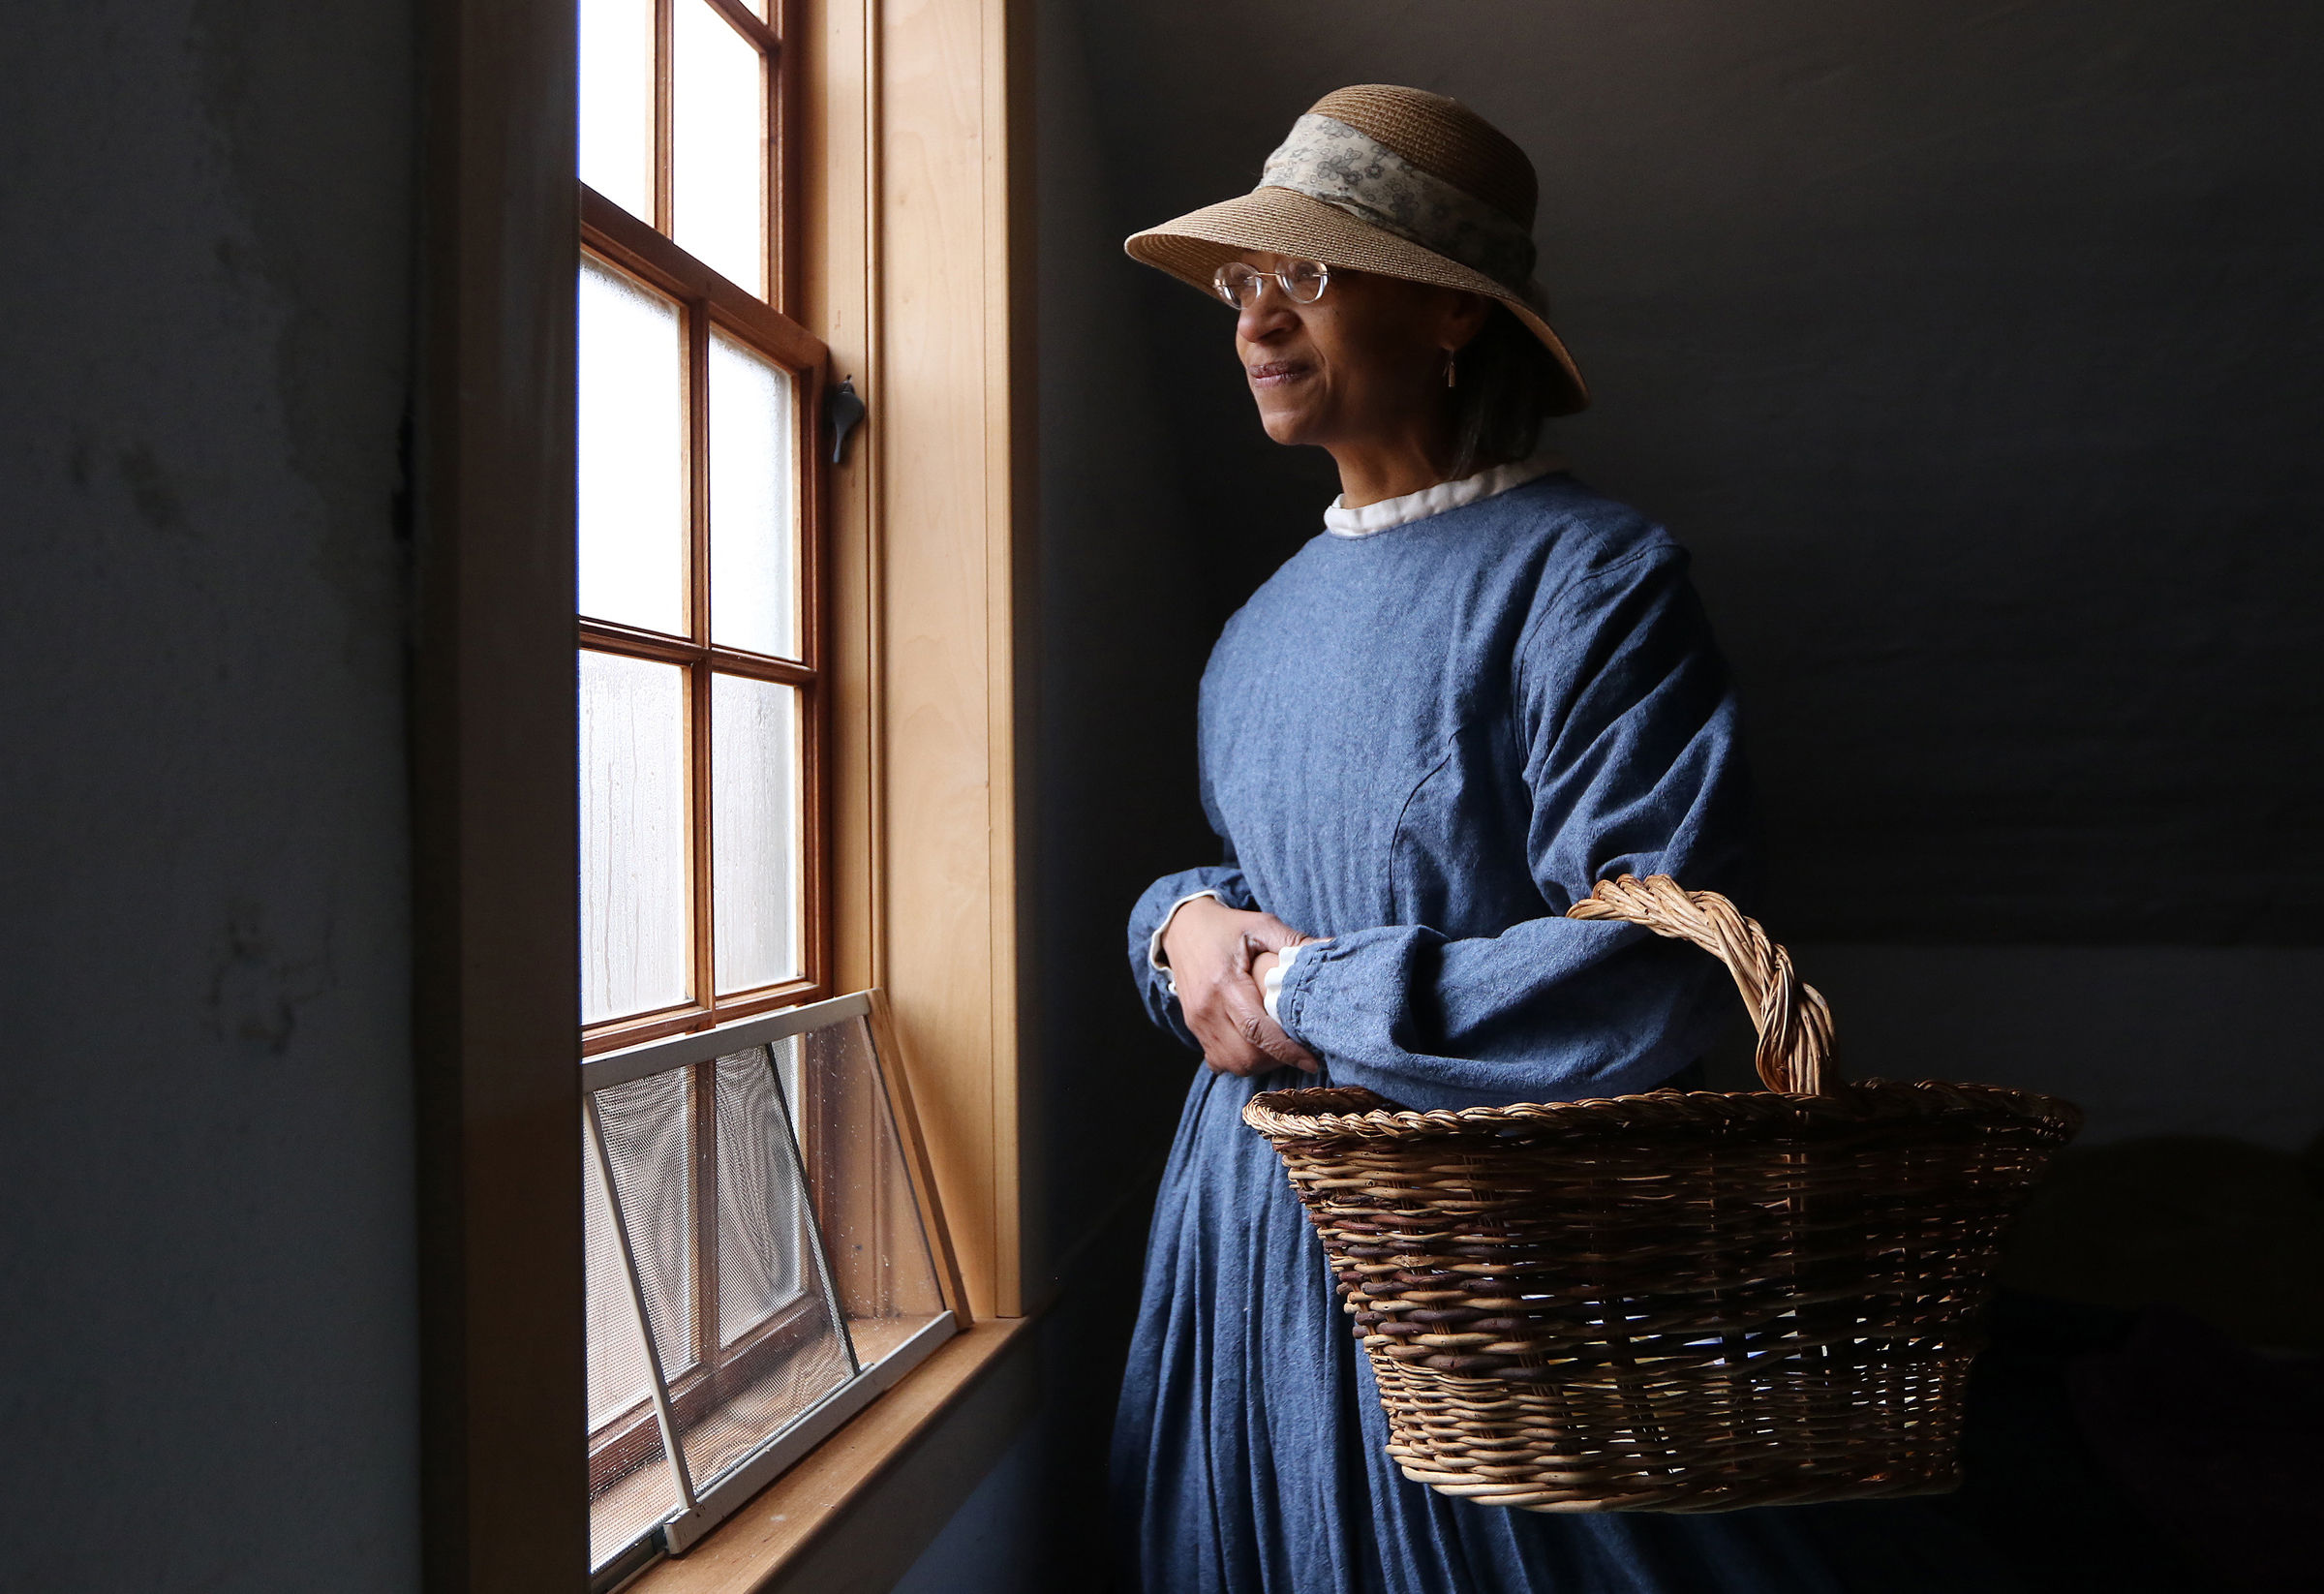 Maria Madison portrays Ellen Garrison at The Robbins House in Concord Friday, Feb. 16, 2018. Born in the house in 1823, Garrison went on to a life as an activist for African American rights. Students from Greenfield Commonwealth Virtual School went to the house to learn about the families who lived there and Concord's African American history. [Wicked Local Staff Photo/Ann Ringwood]